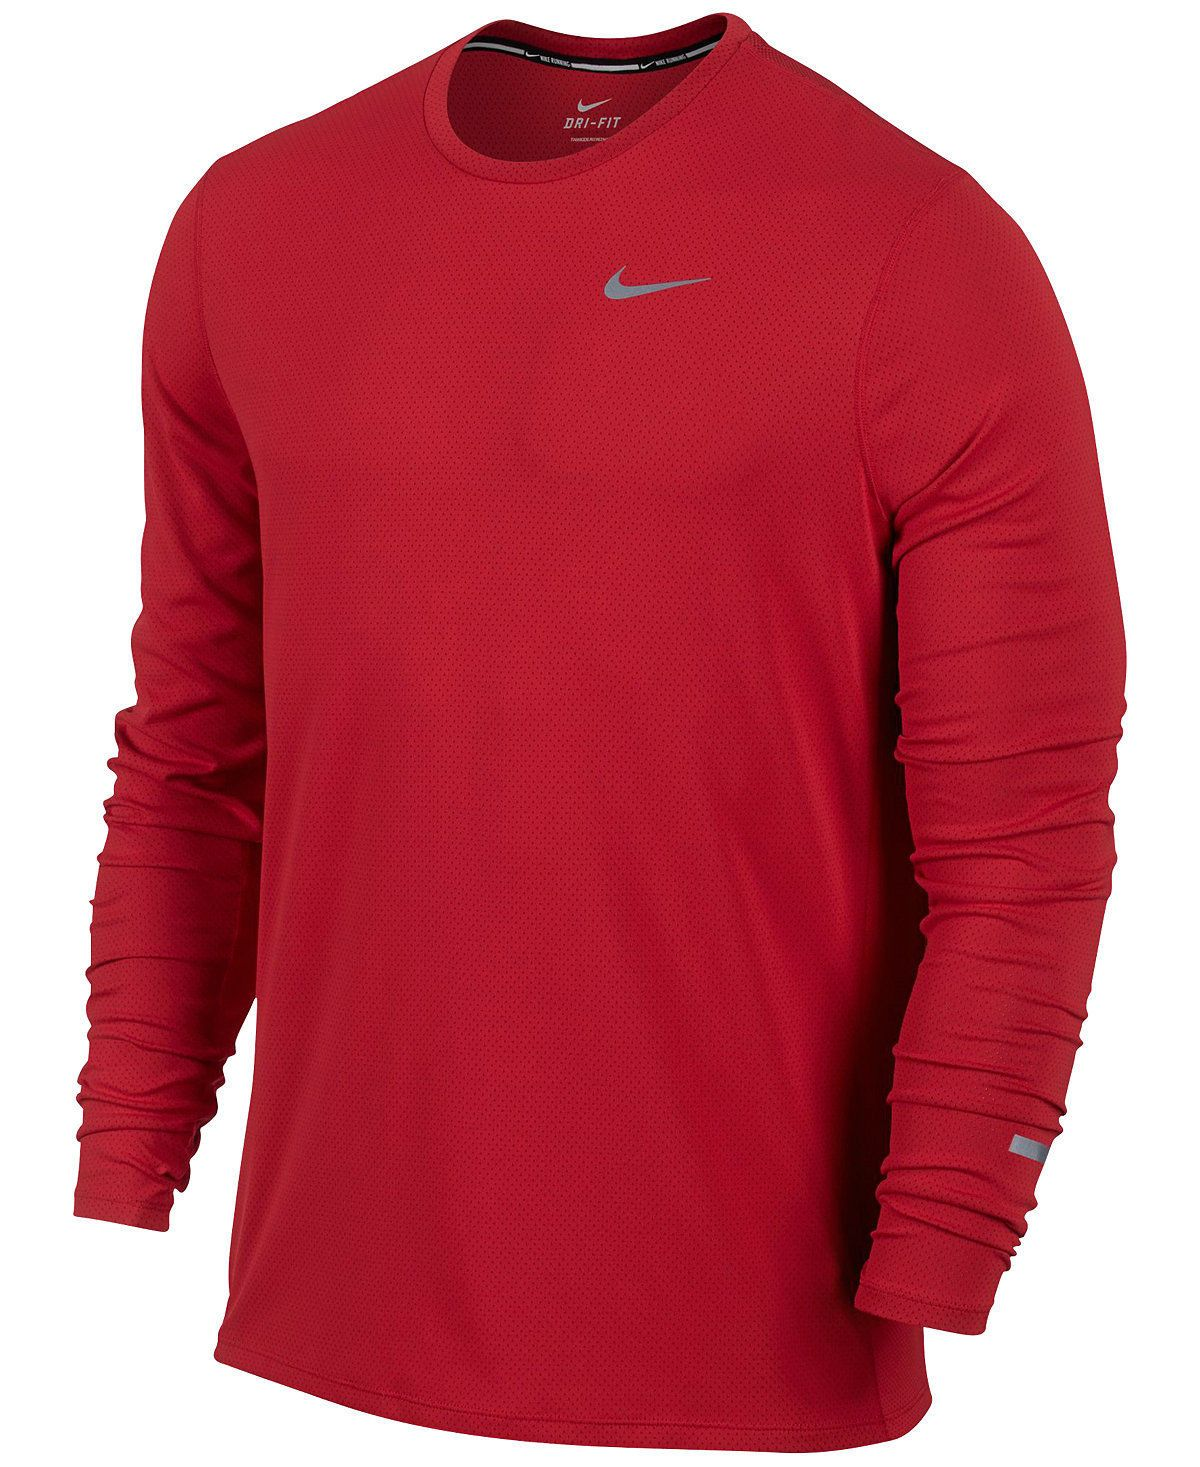 Men Athletics: Nwt Nike Running Contour Long Sleeve Shirt Dri-Fit Crew Tee  849954